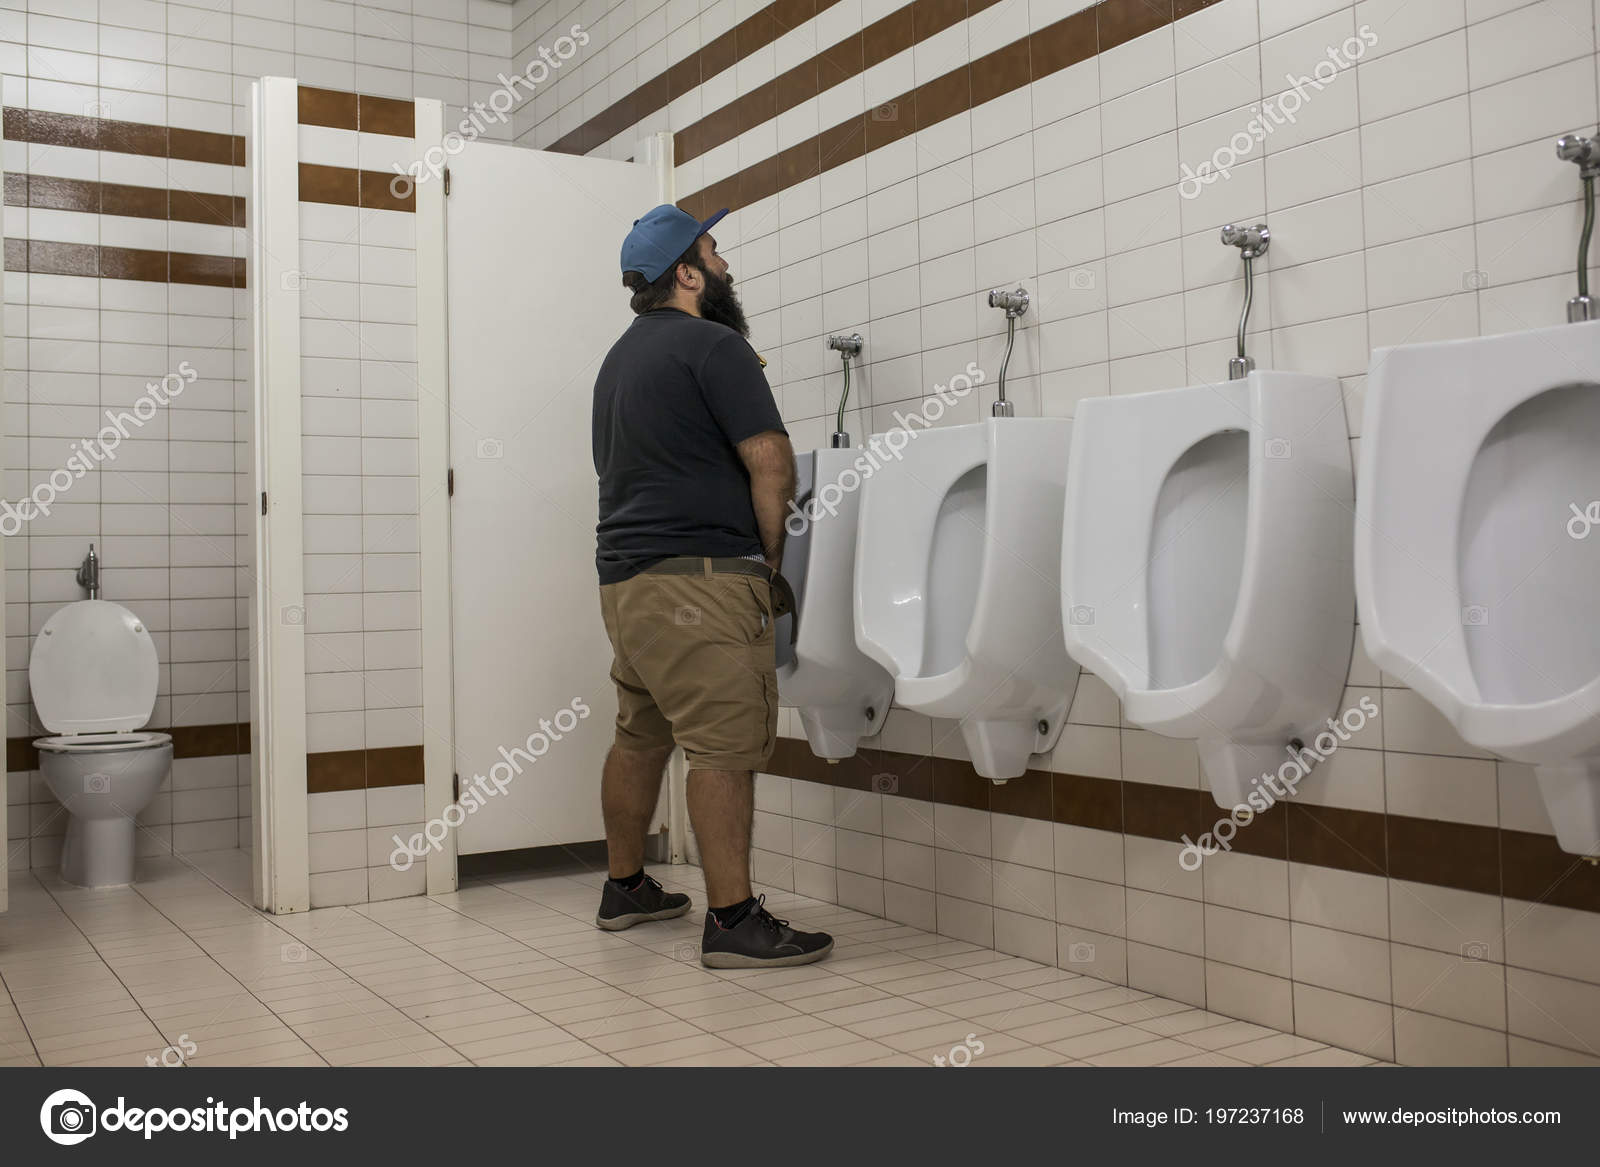 man-piss-in-urinal